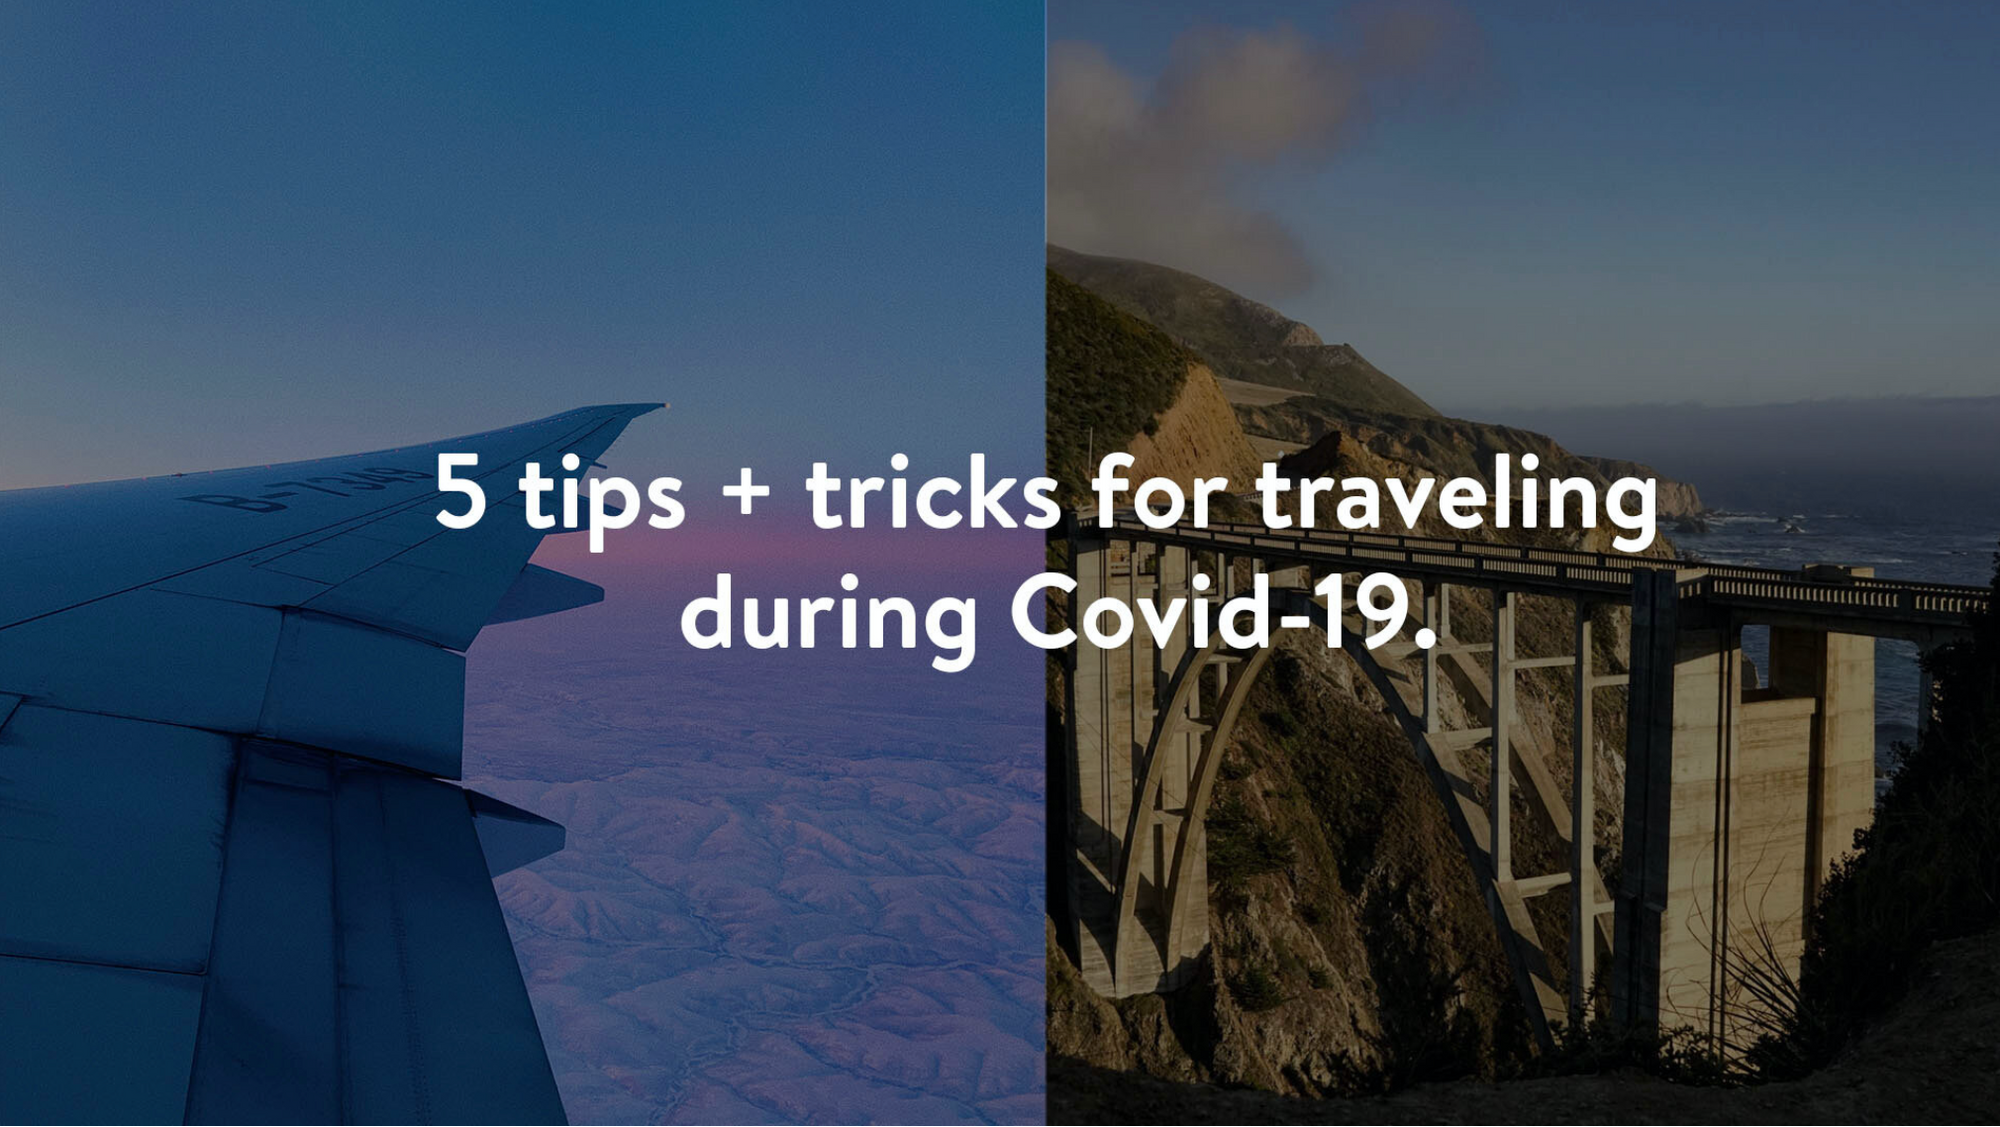 5 tips + tricks for traveling during COVID-19